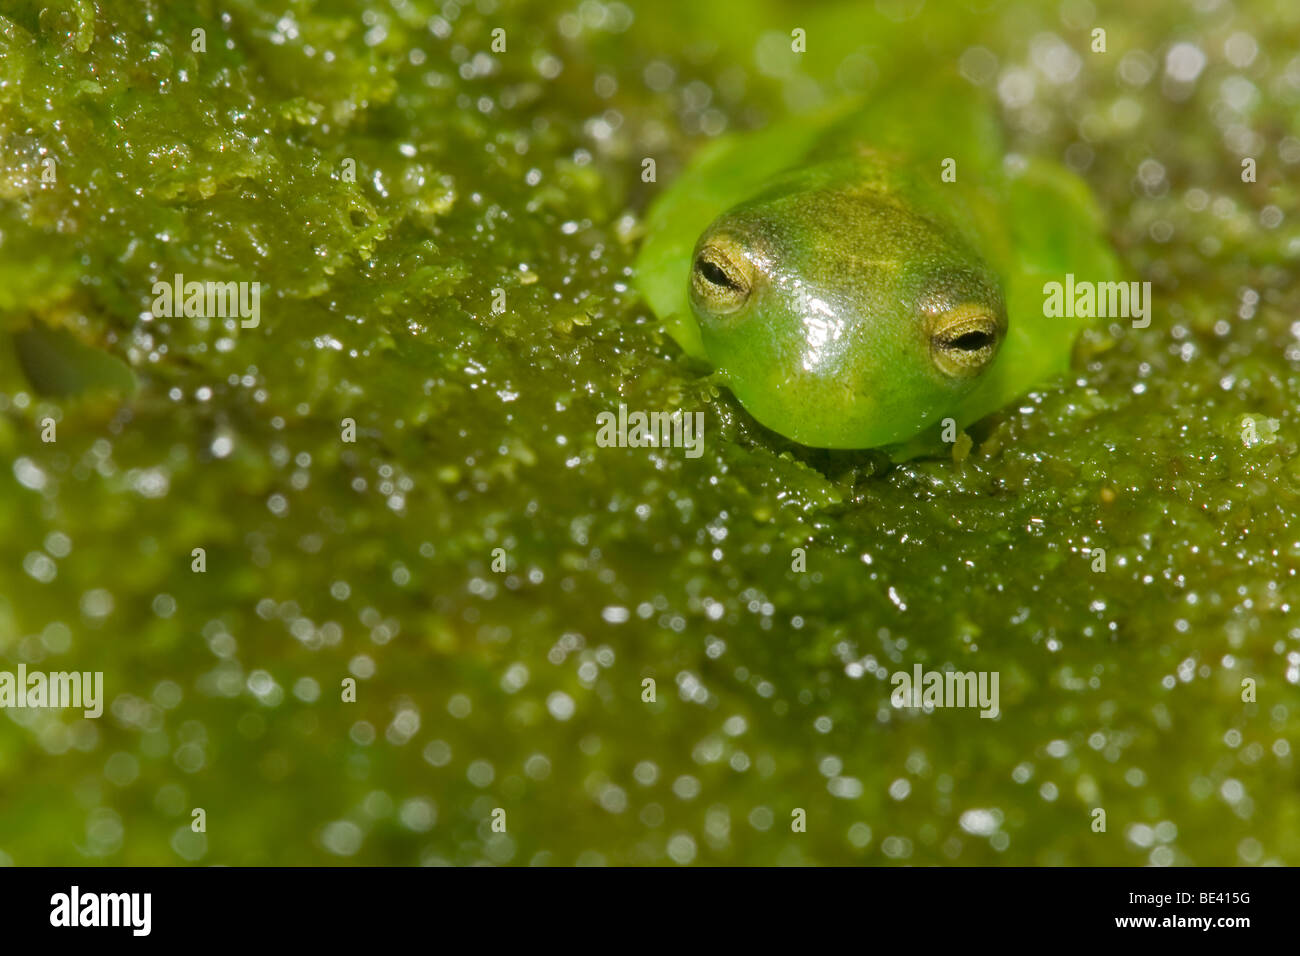 Spiny cochran glass frog cochranella spinosa glass frogs have spiny cochran glass frog cochranella spinosa glass frogs have translucent flesh that leaves their internal organs visible ccuart Gallery